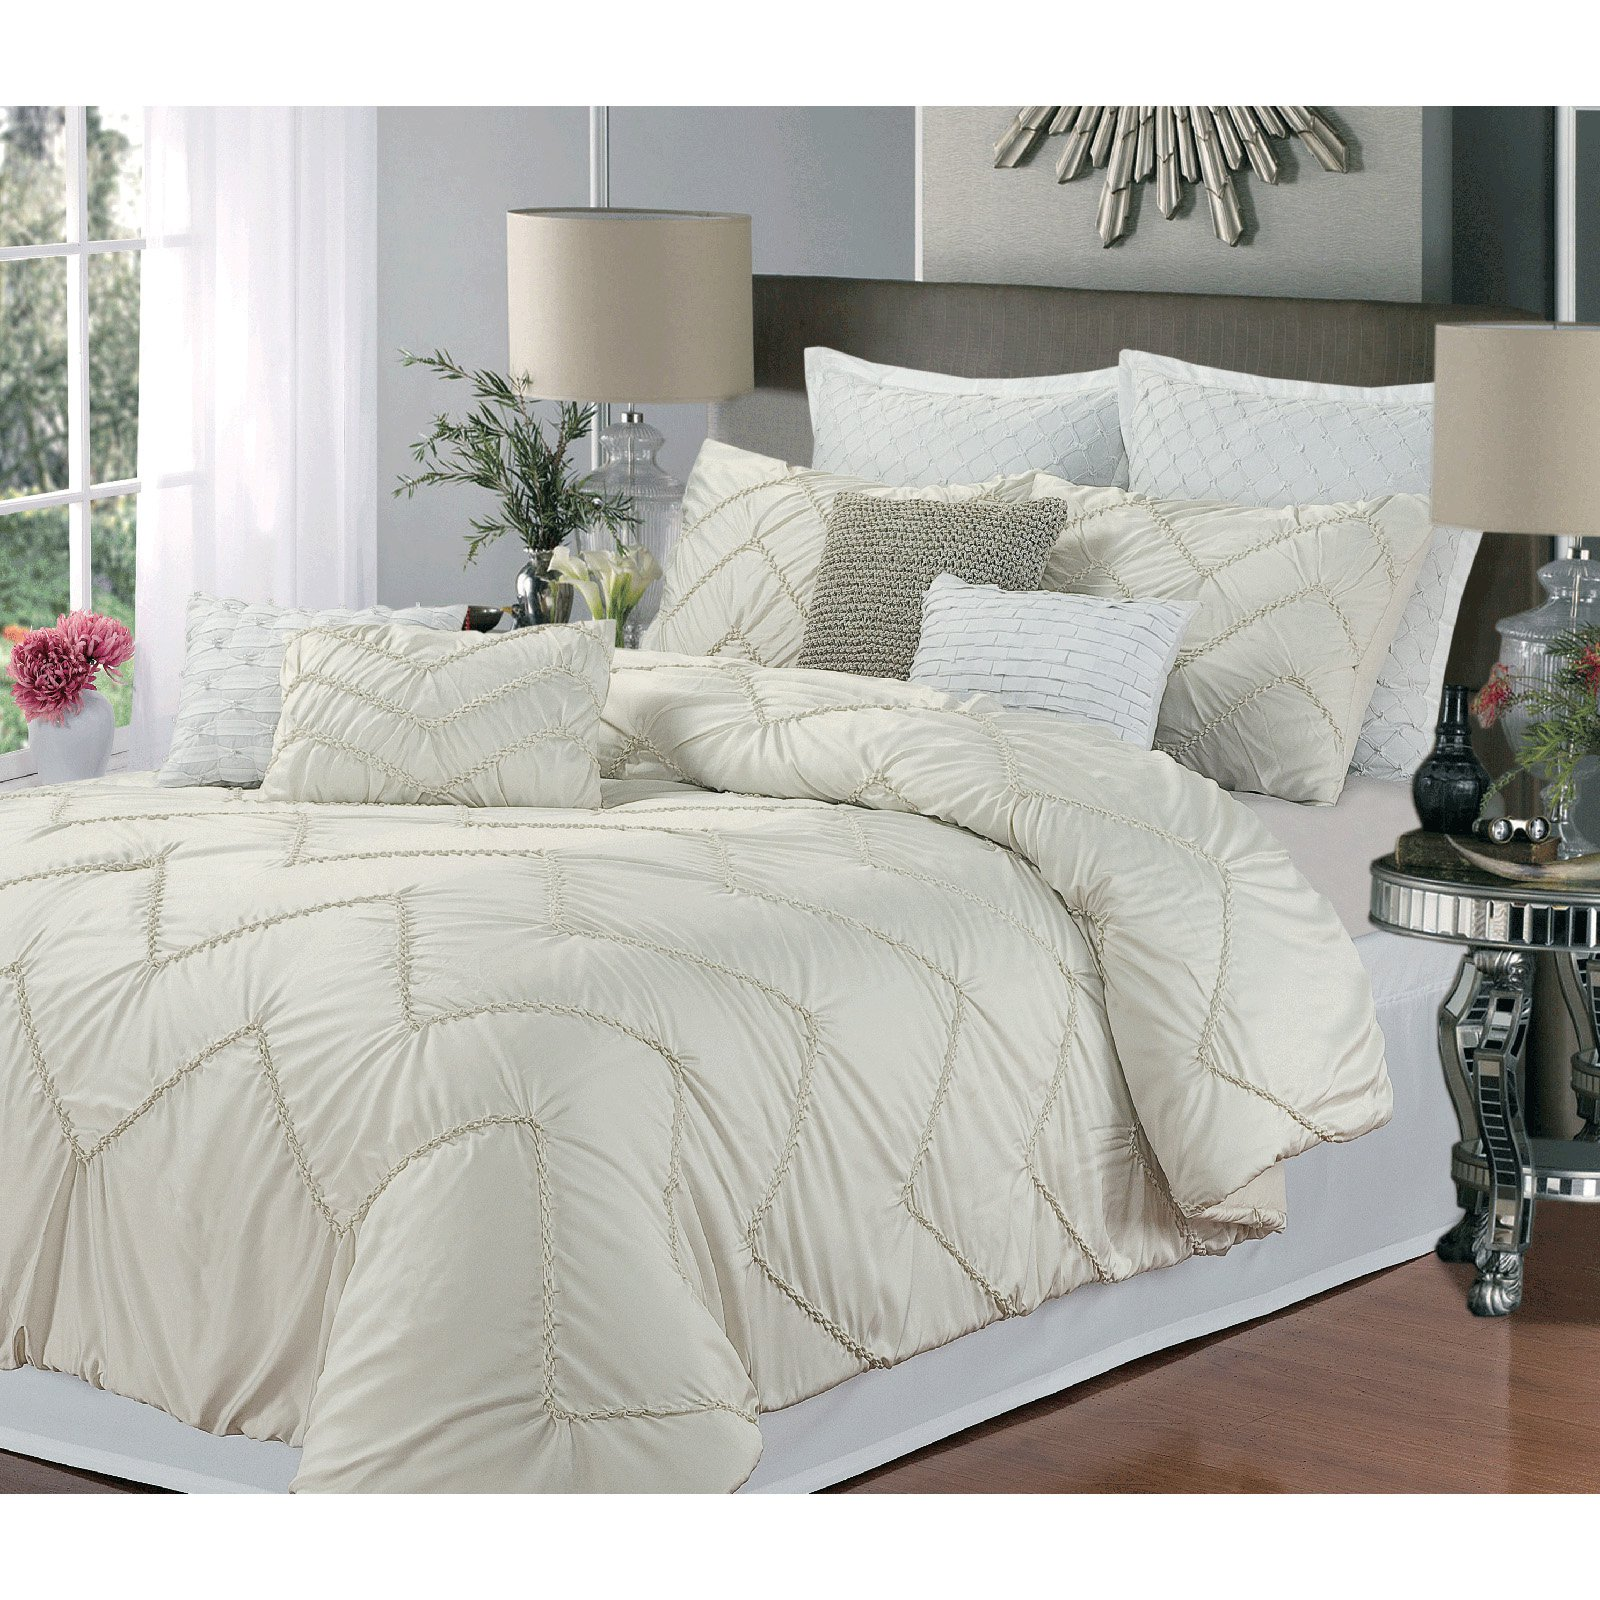 Chic Home Isabella Duvet Cover Set - Walmart.com